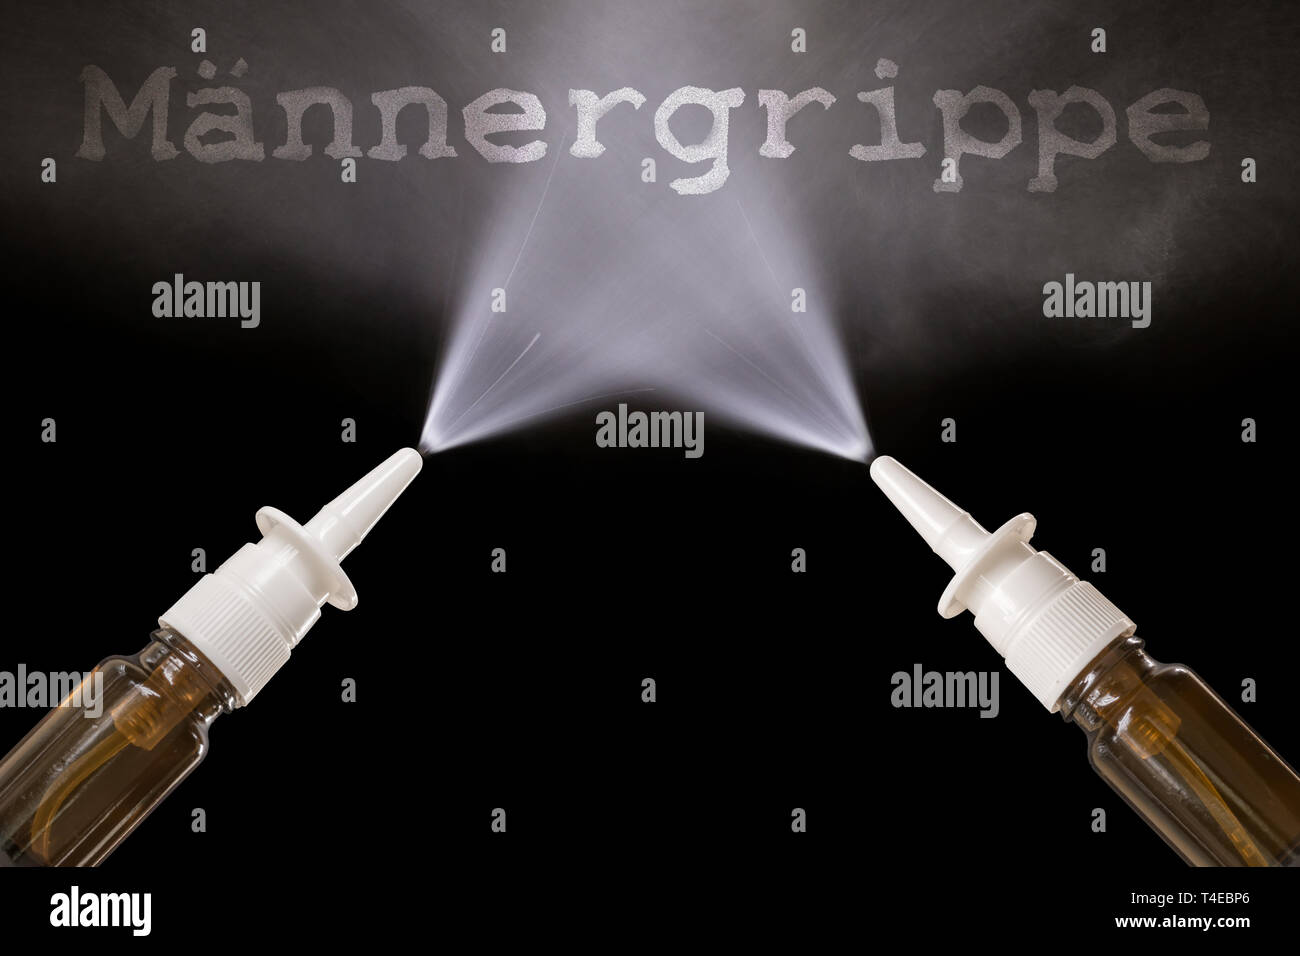 Spraying nasal spray with the headline in German 'Men flu' - Stock Image